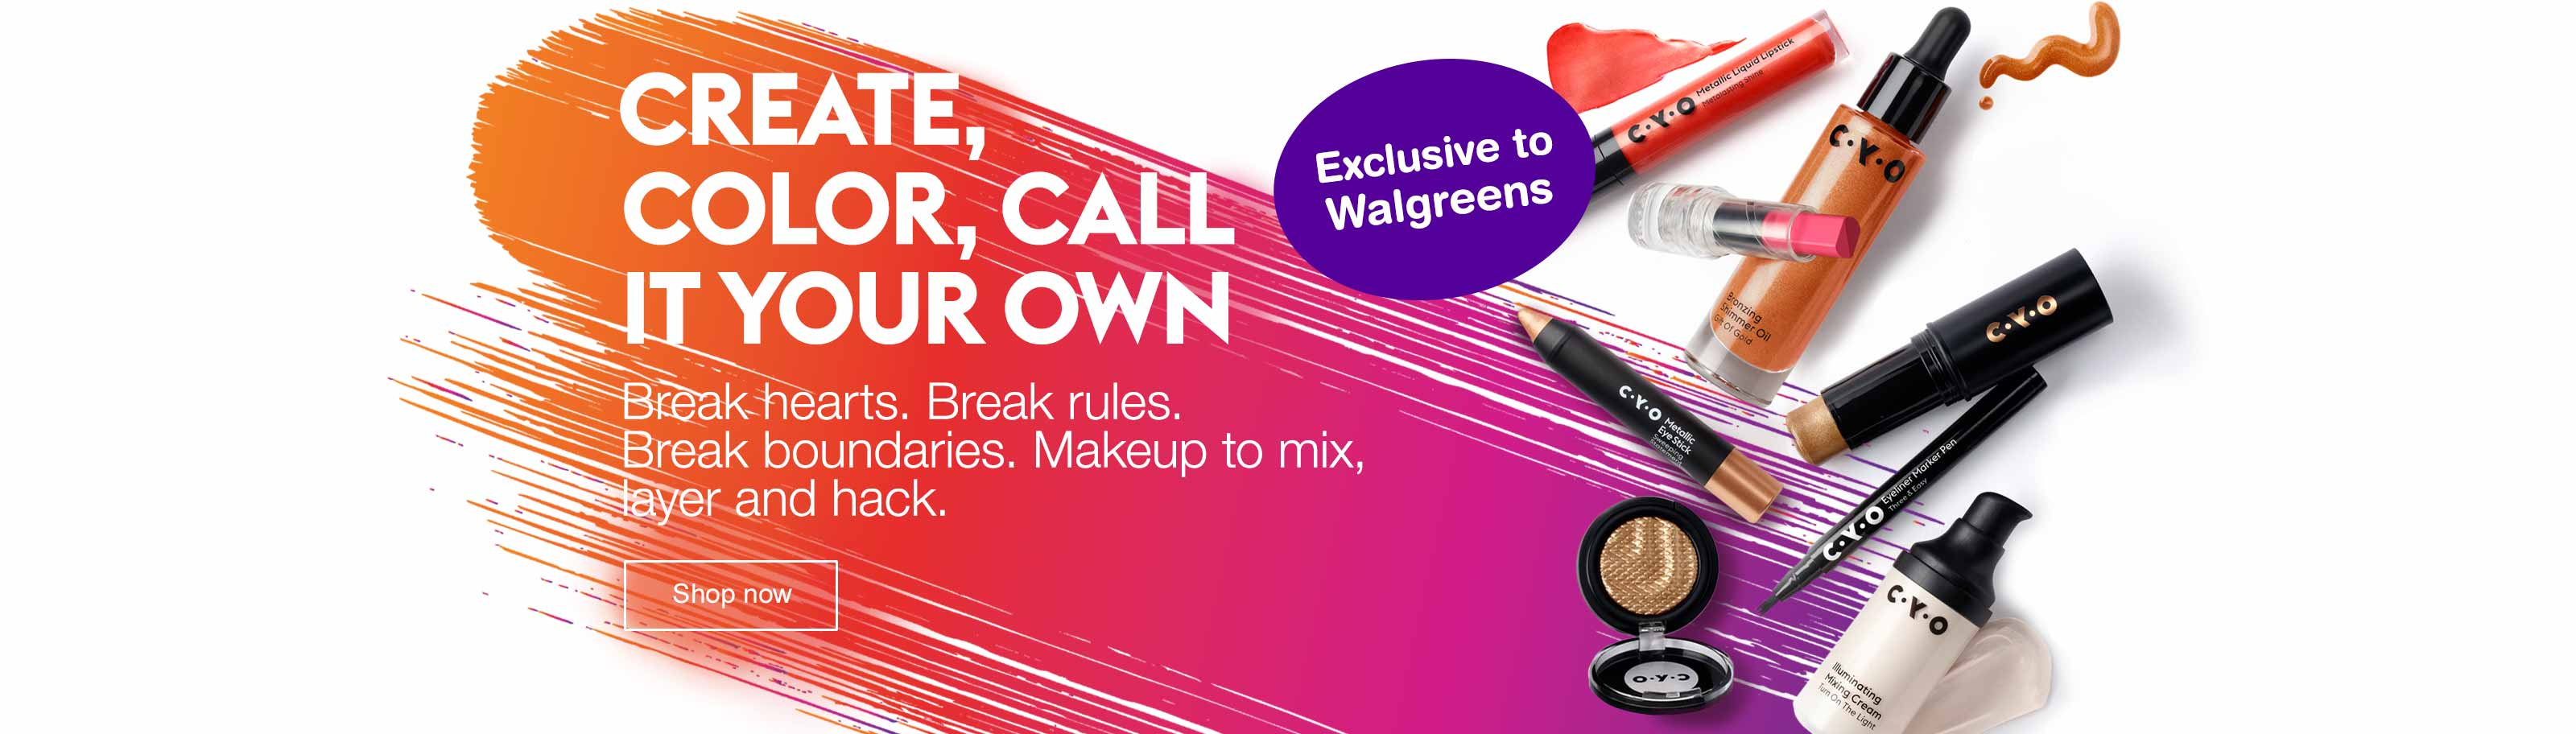 Create, Color, Call it your own. Break hearts. Break rules. Break boundaries. Makeup to mix, layer and hack. Exclusive to Walgreens. Shop now.